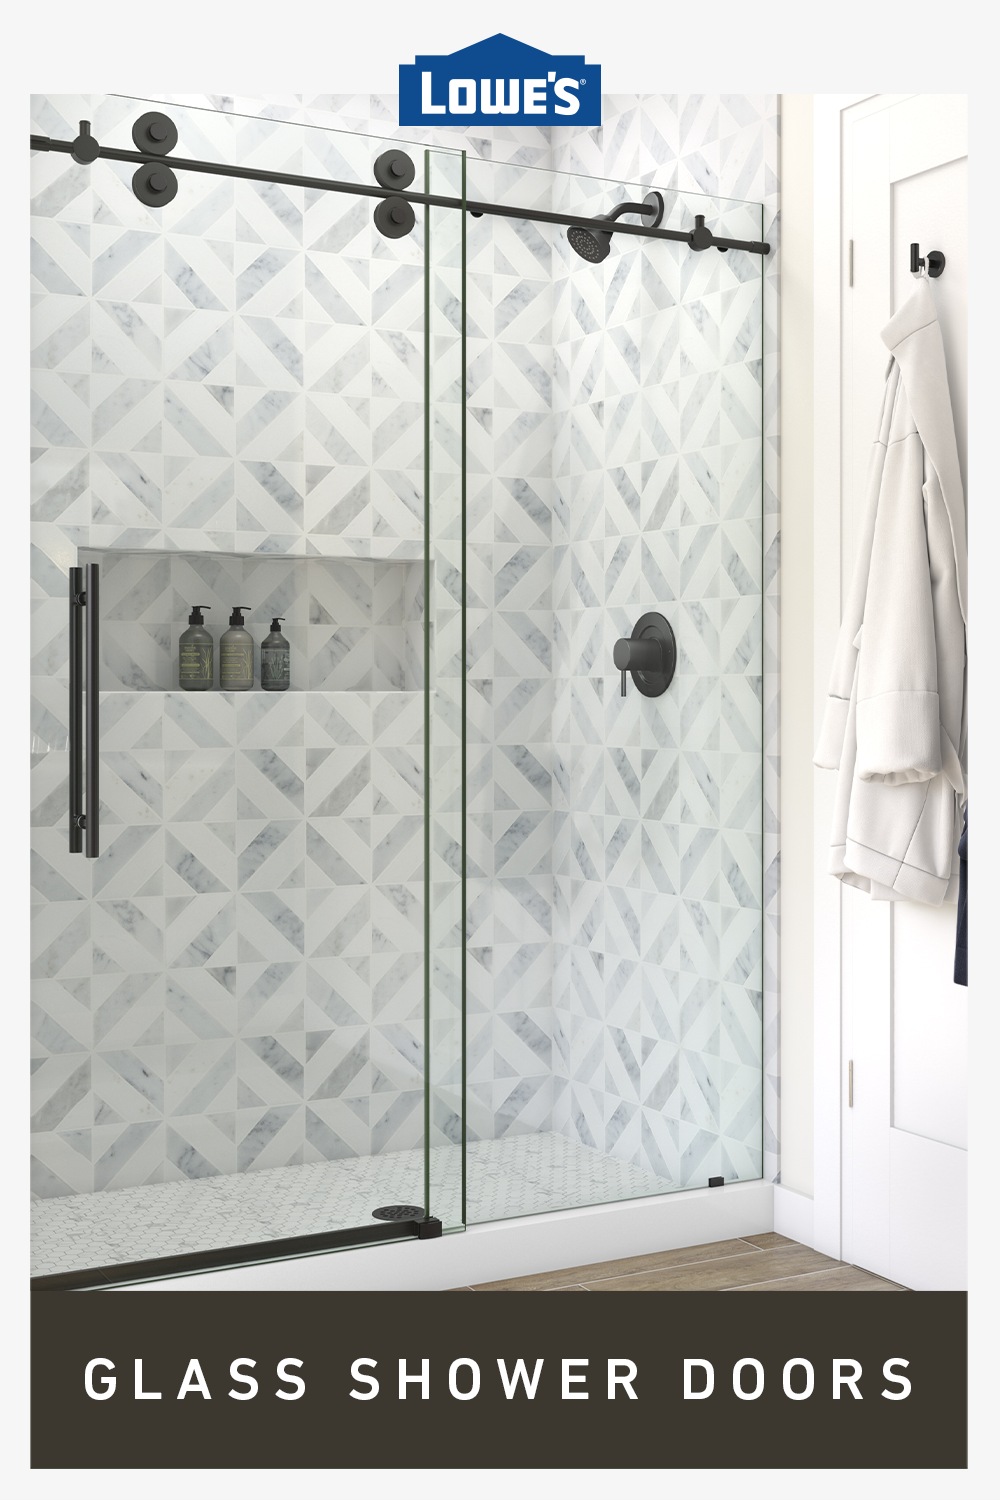 Maximize Space With Glass Shower Doors In 2020 Shower Doors Bathroom Makeover Small Bathroom Remodel